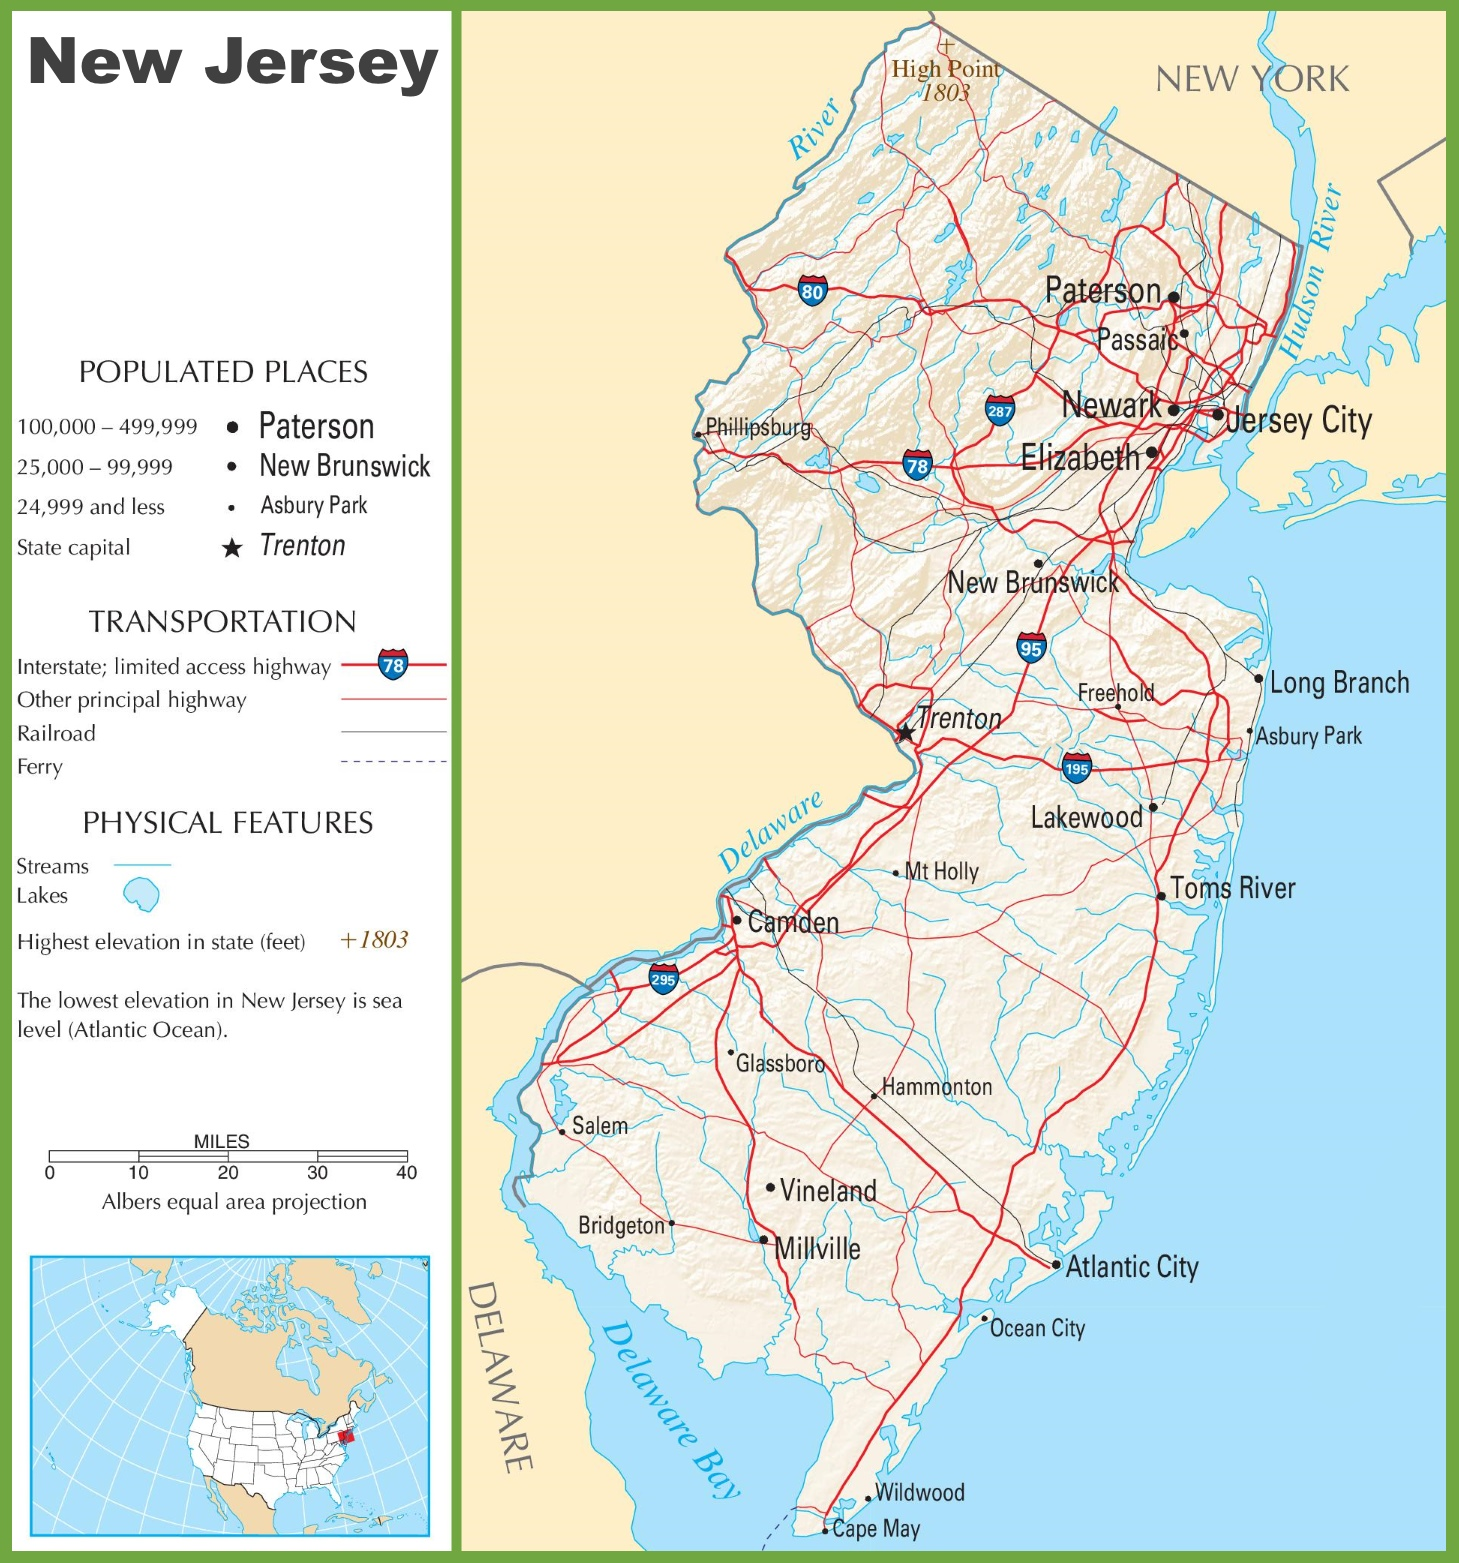 New Jersey State Maps | USA | Maps of New Jersey (NJ)